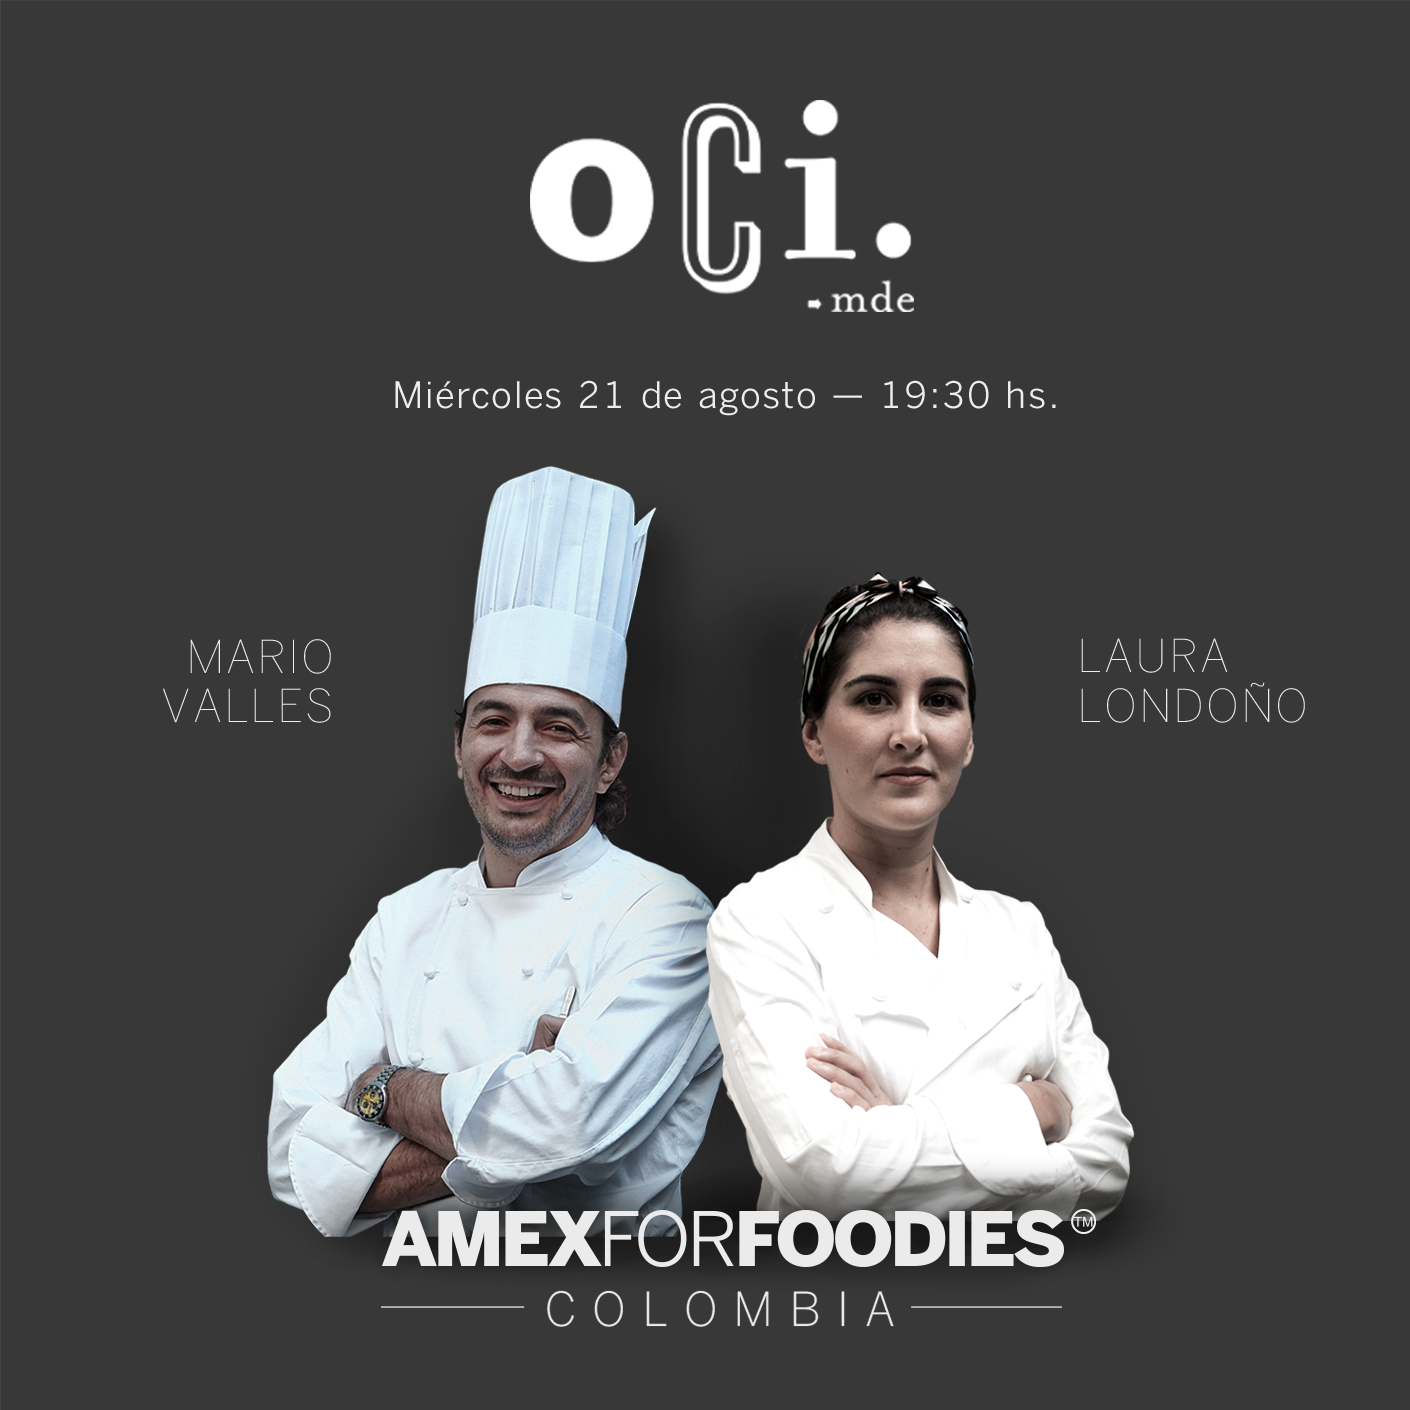 Barcal Amex For Foodies